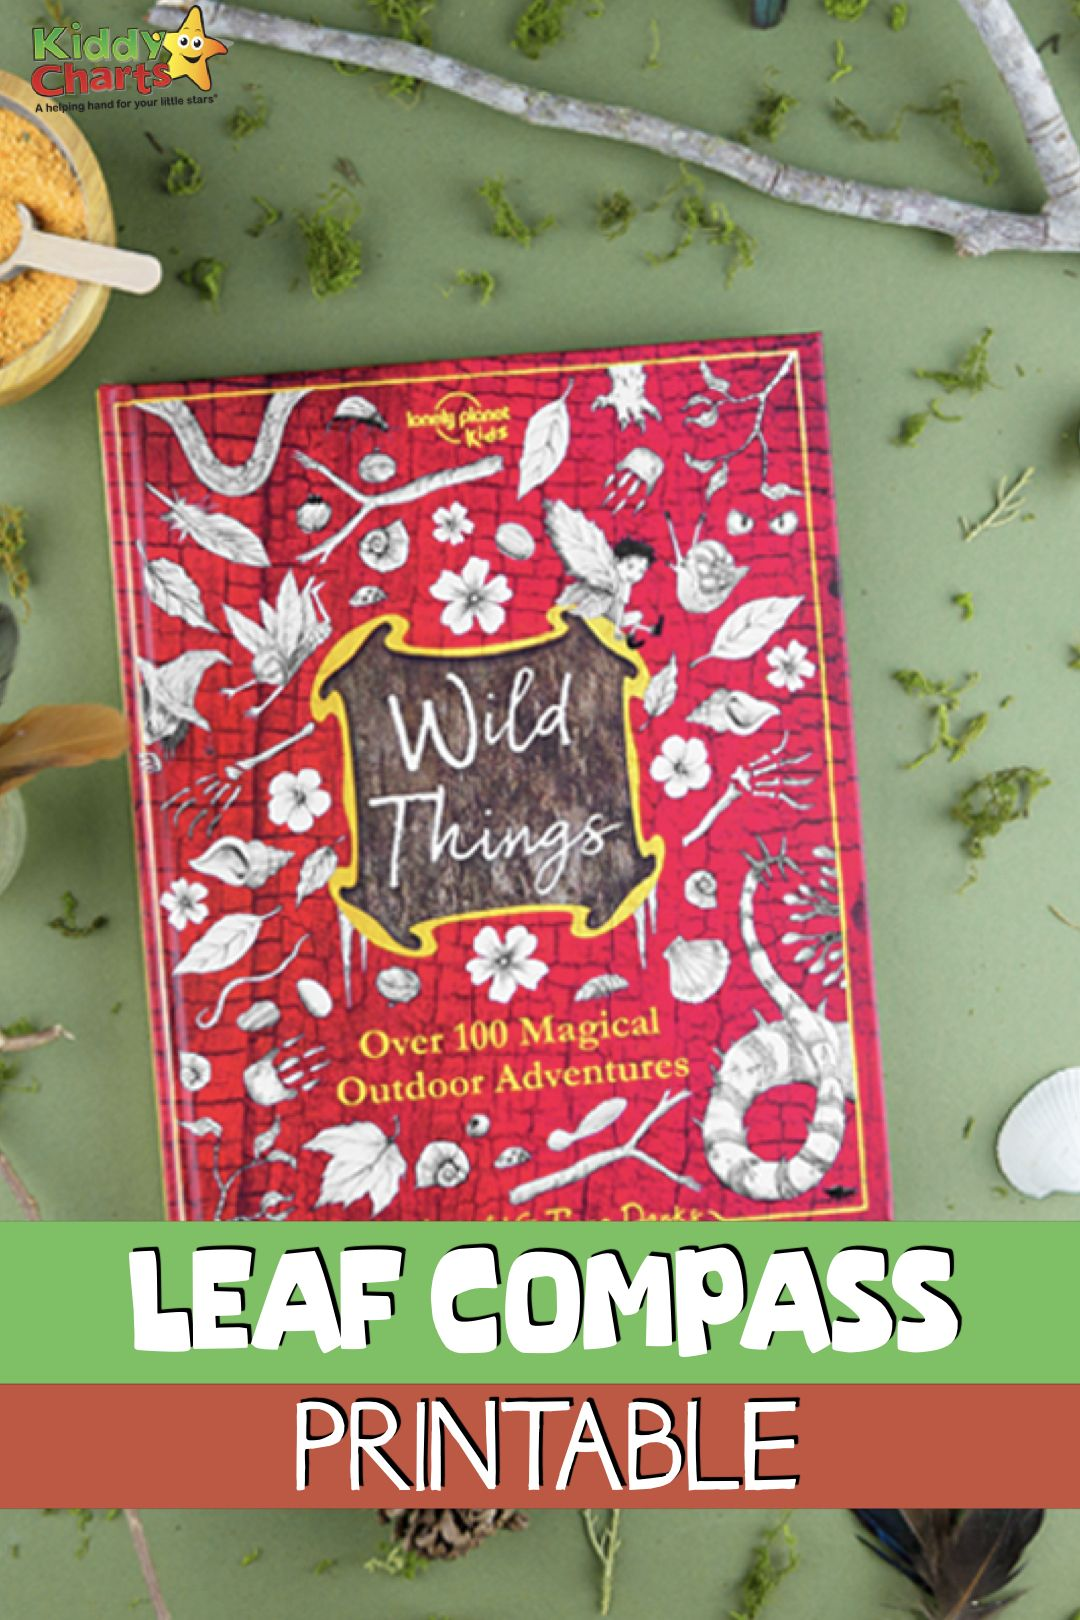 Try Our Printable Leaf Compass For An Outdoor Magical